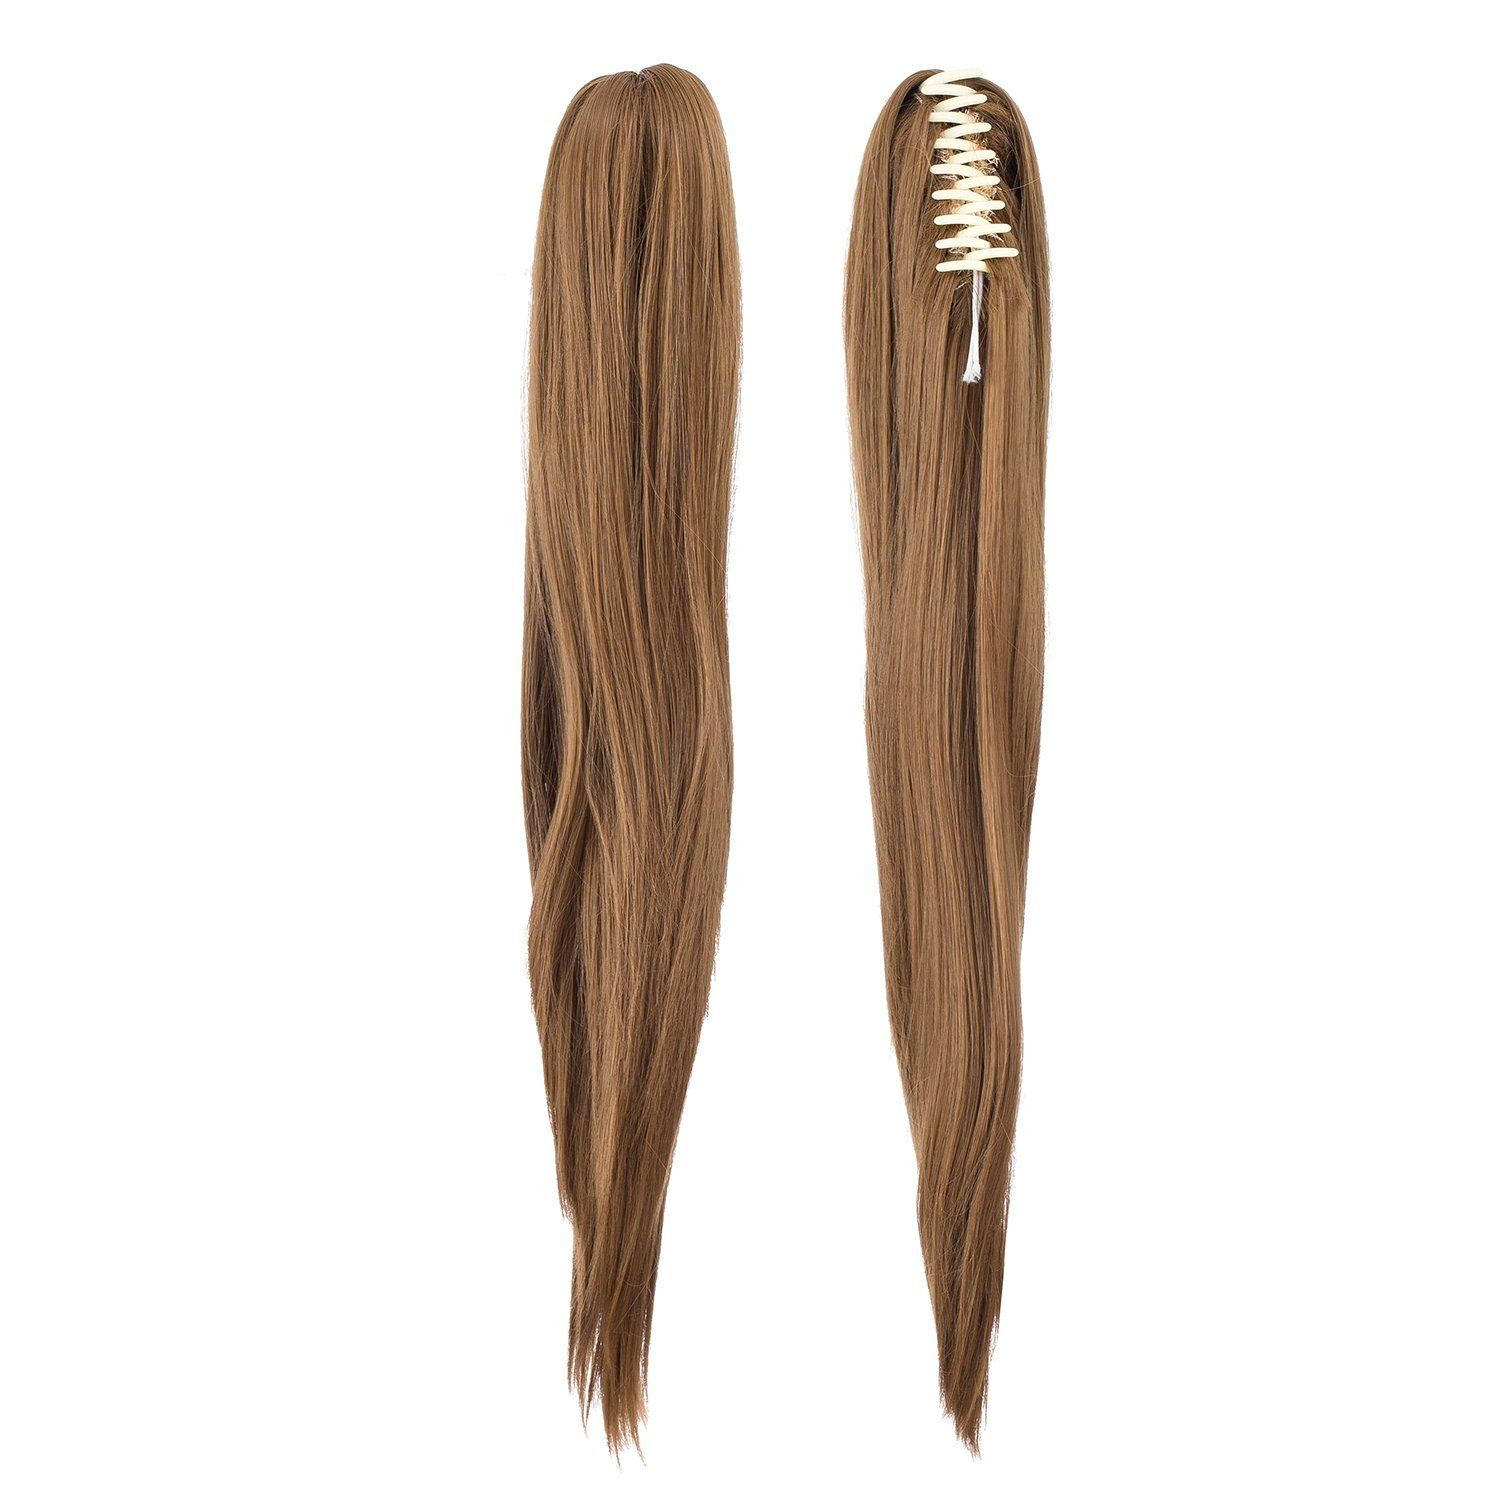 Swacc Straight Curly Claw Clip Ponytail Extension Synthetic Clip